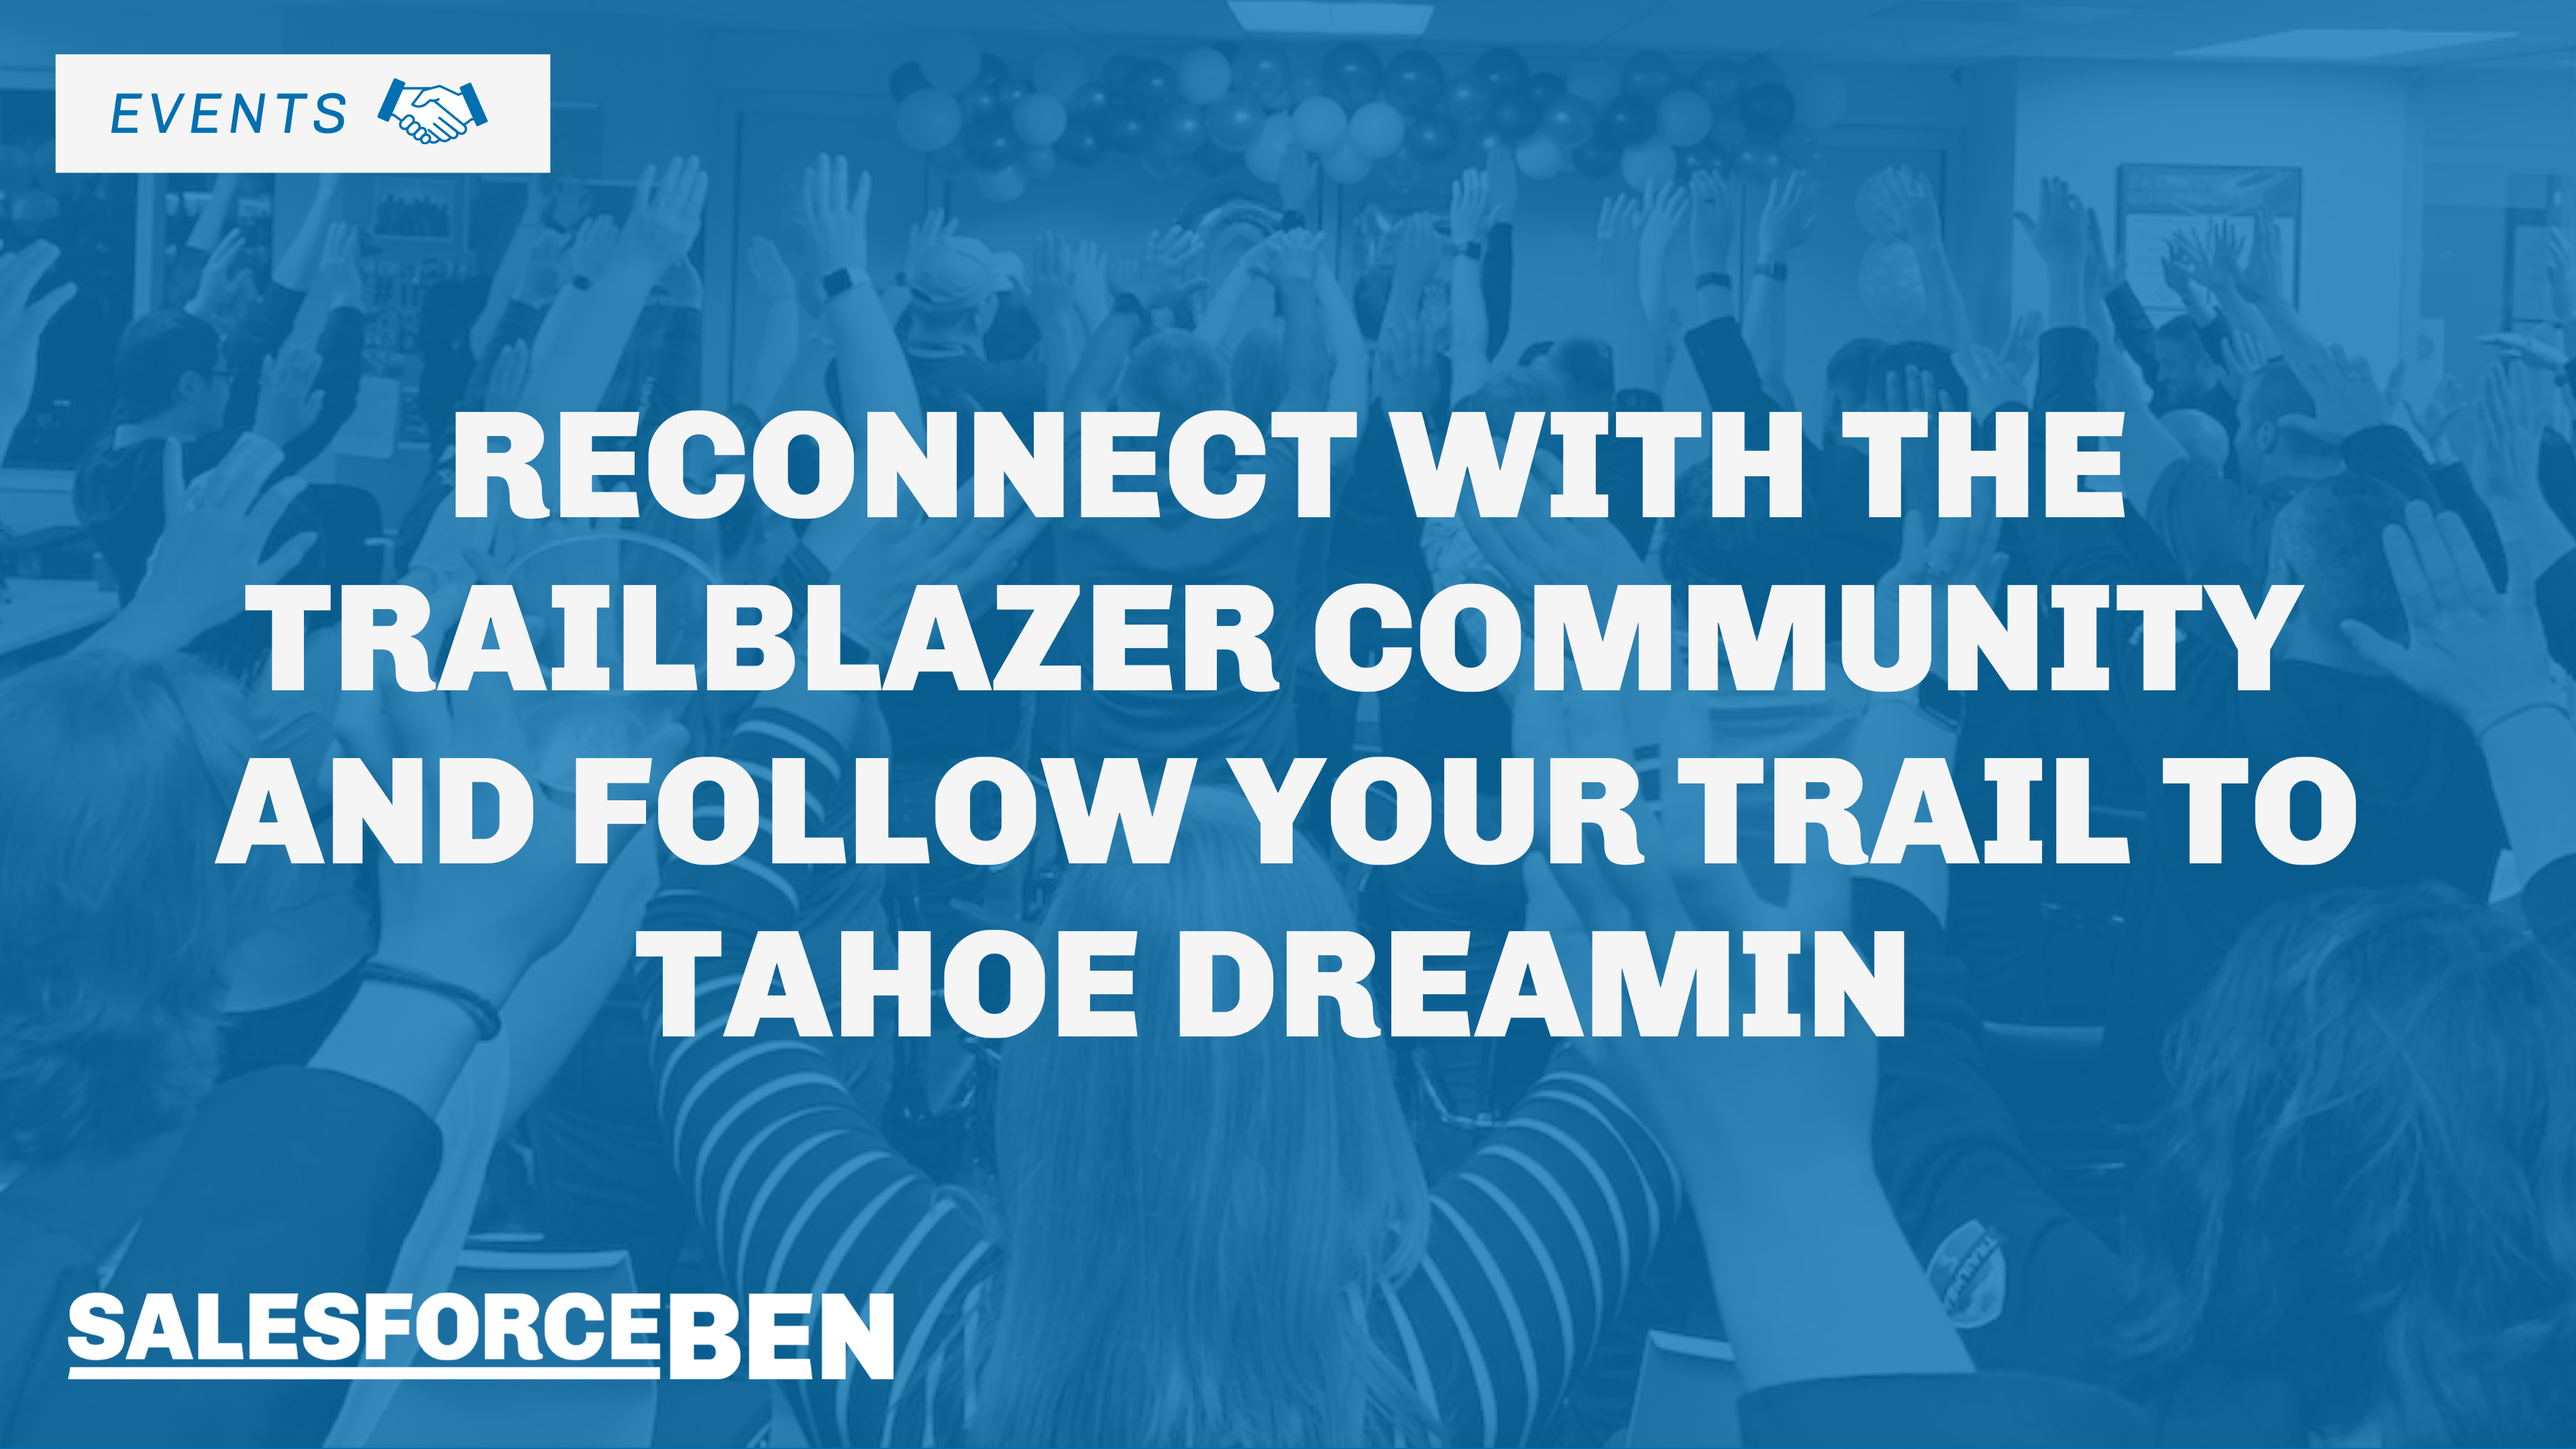 Reconnect with the Trailblazer Community at Tahoe Dreamin